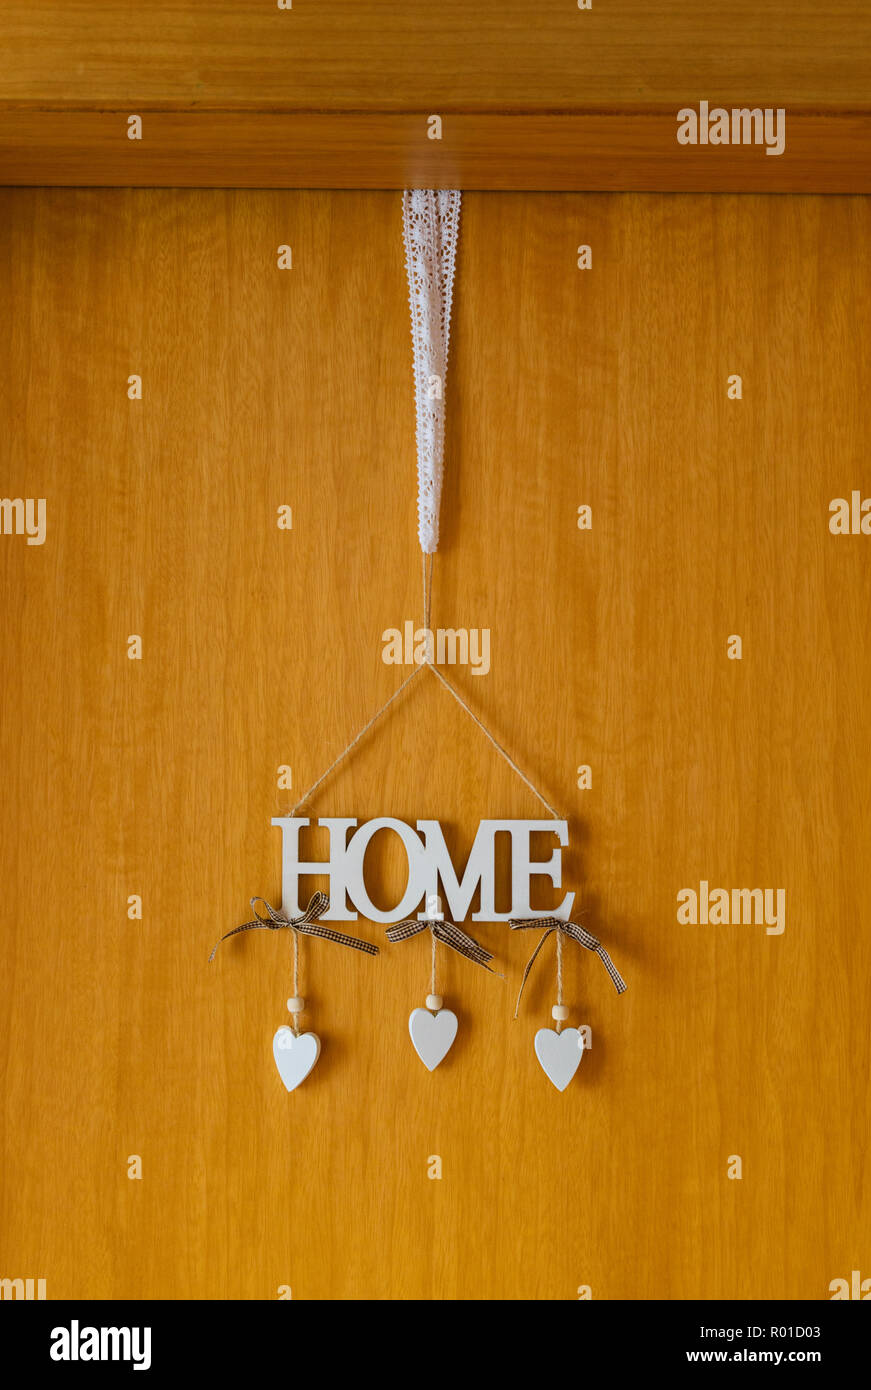 Decorative home word on an entrance door - Stock Image